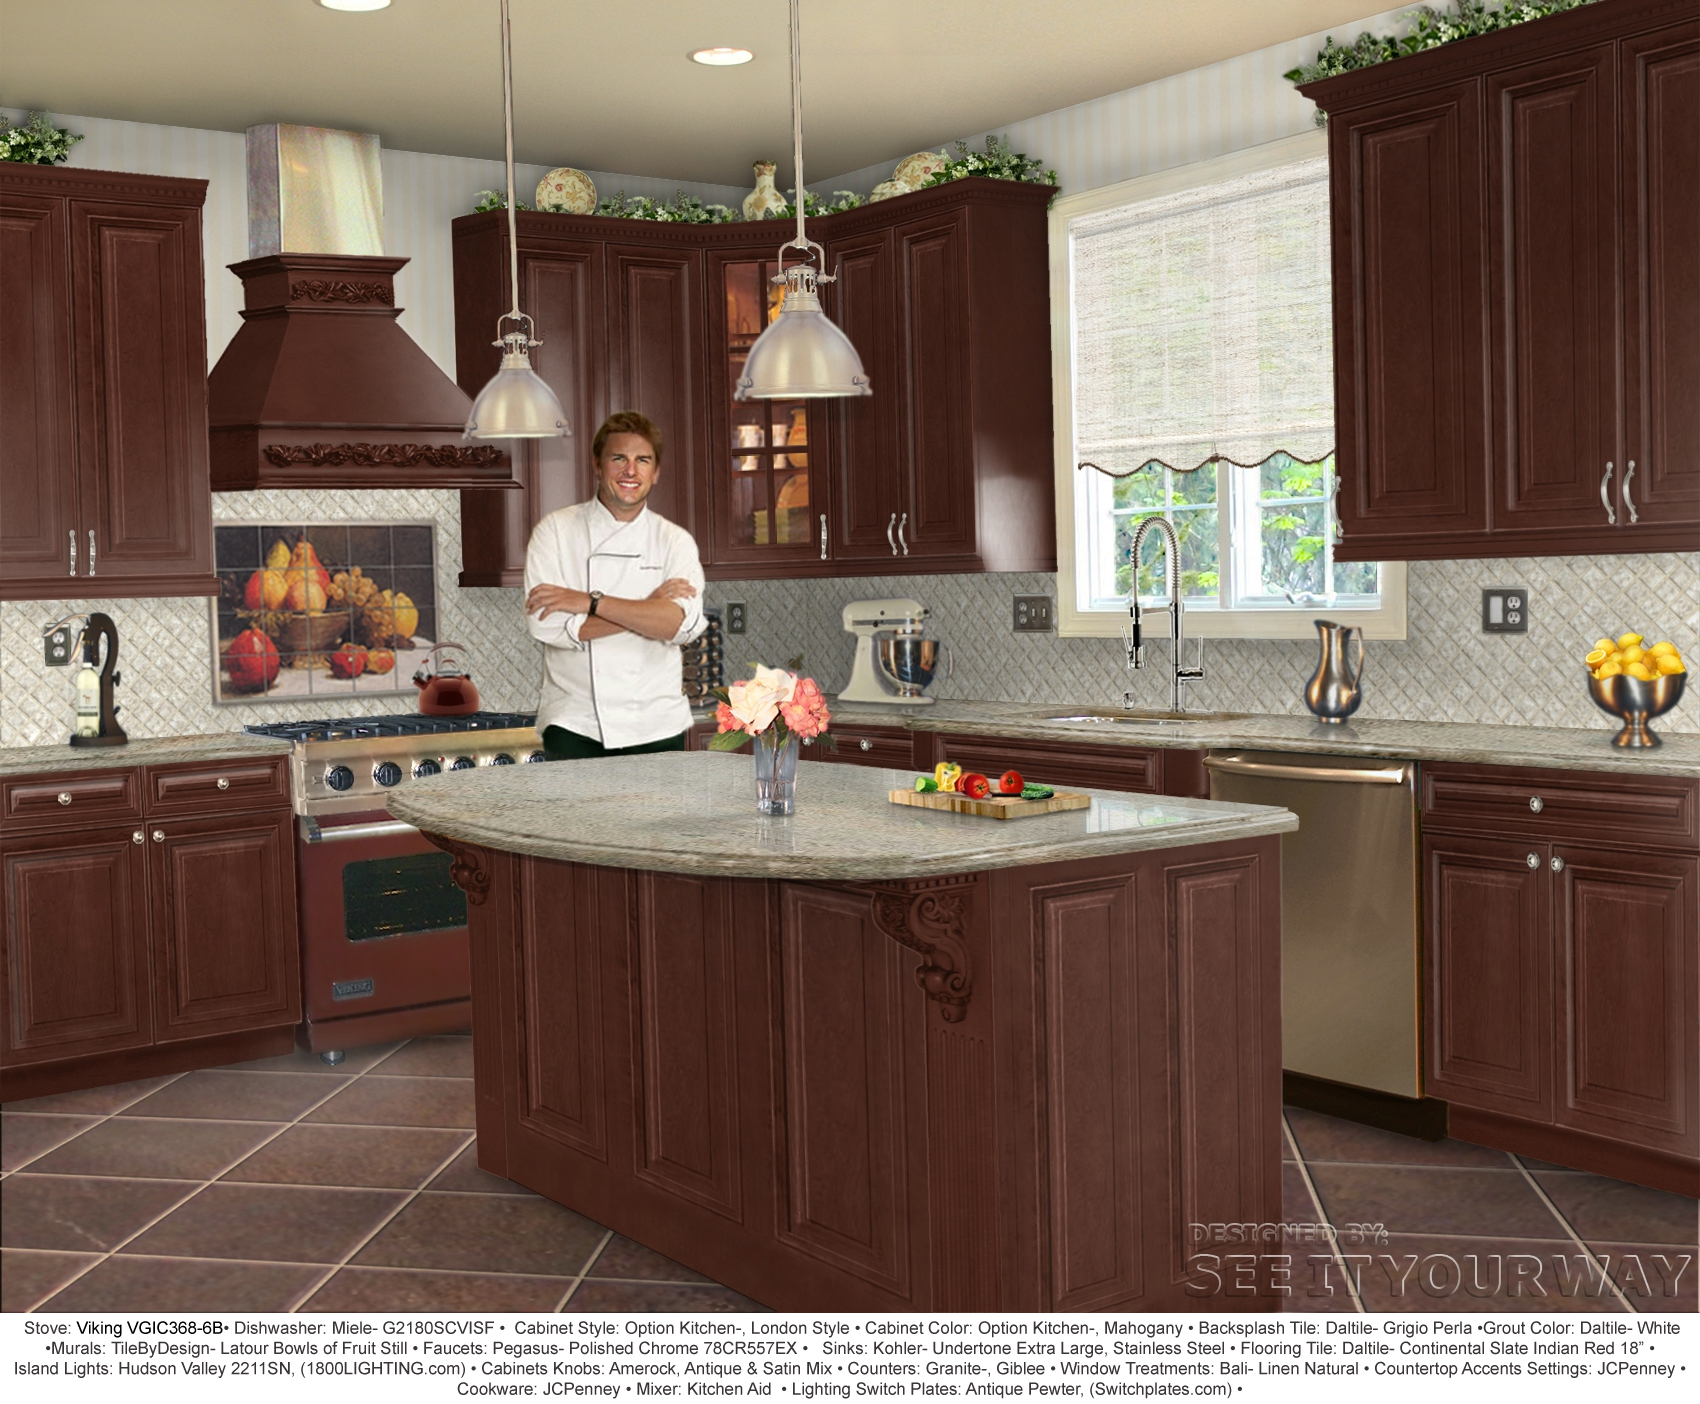 the behr paint color gallery sample kitchen designs kitchen layouts